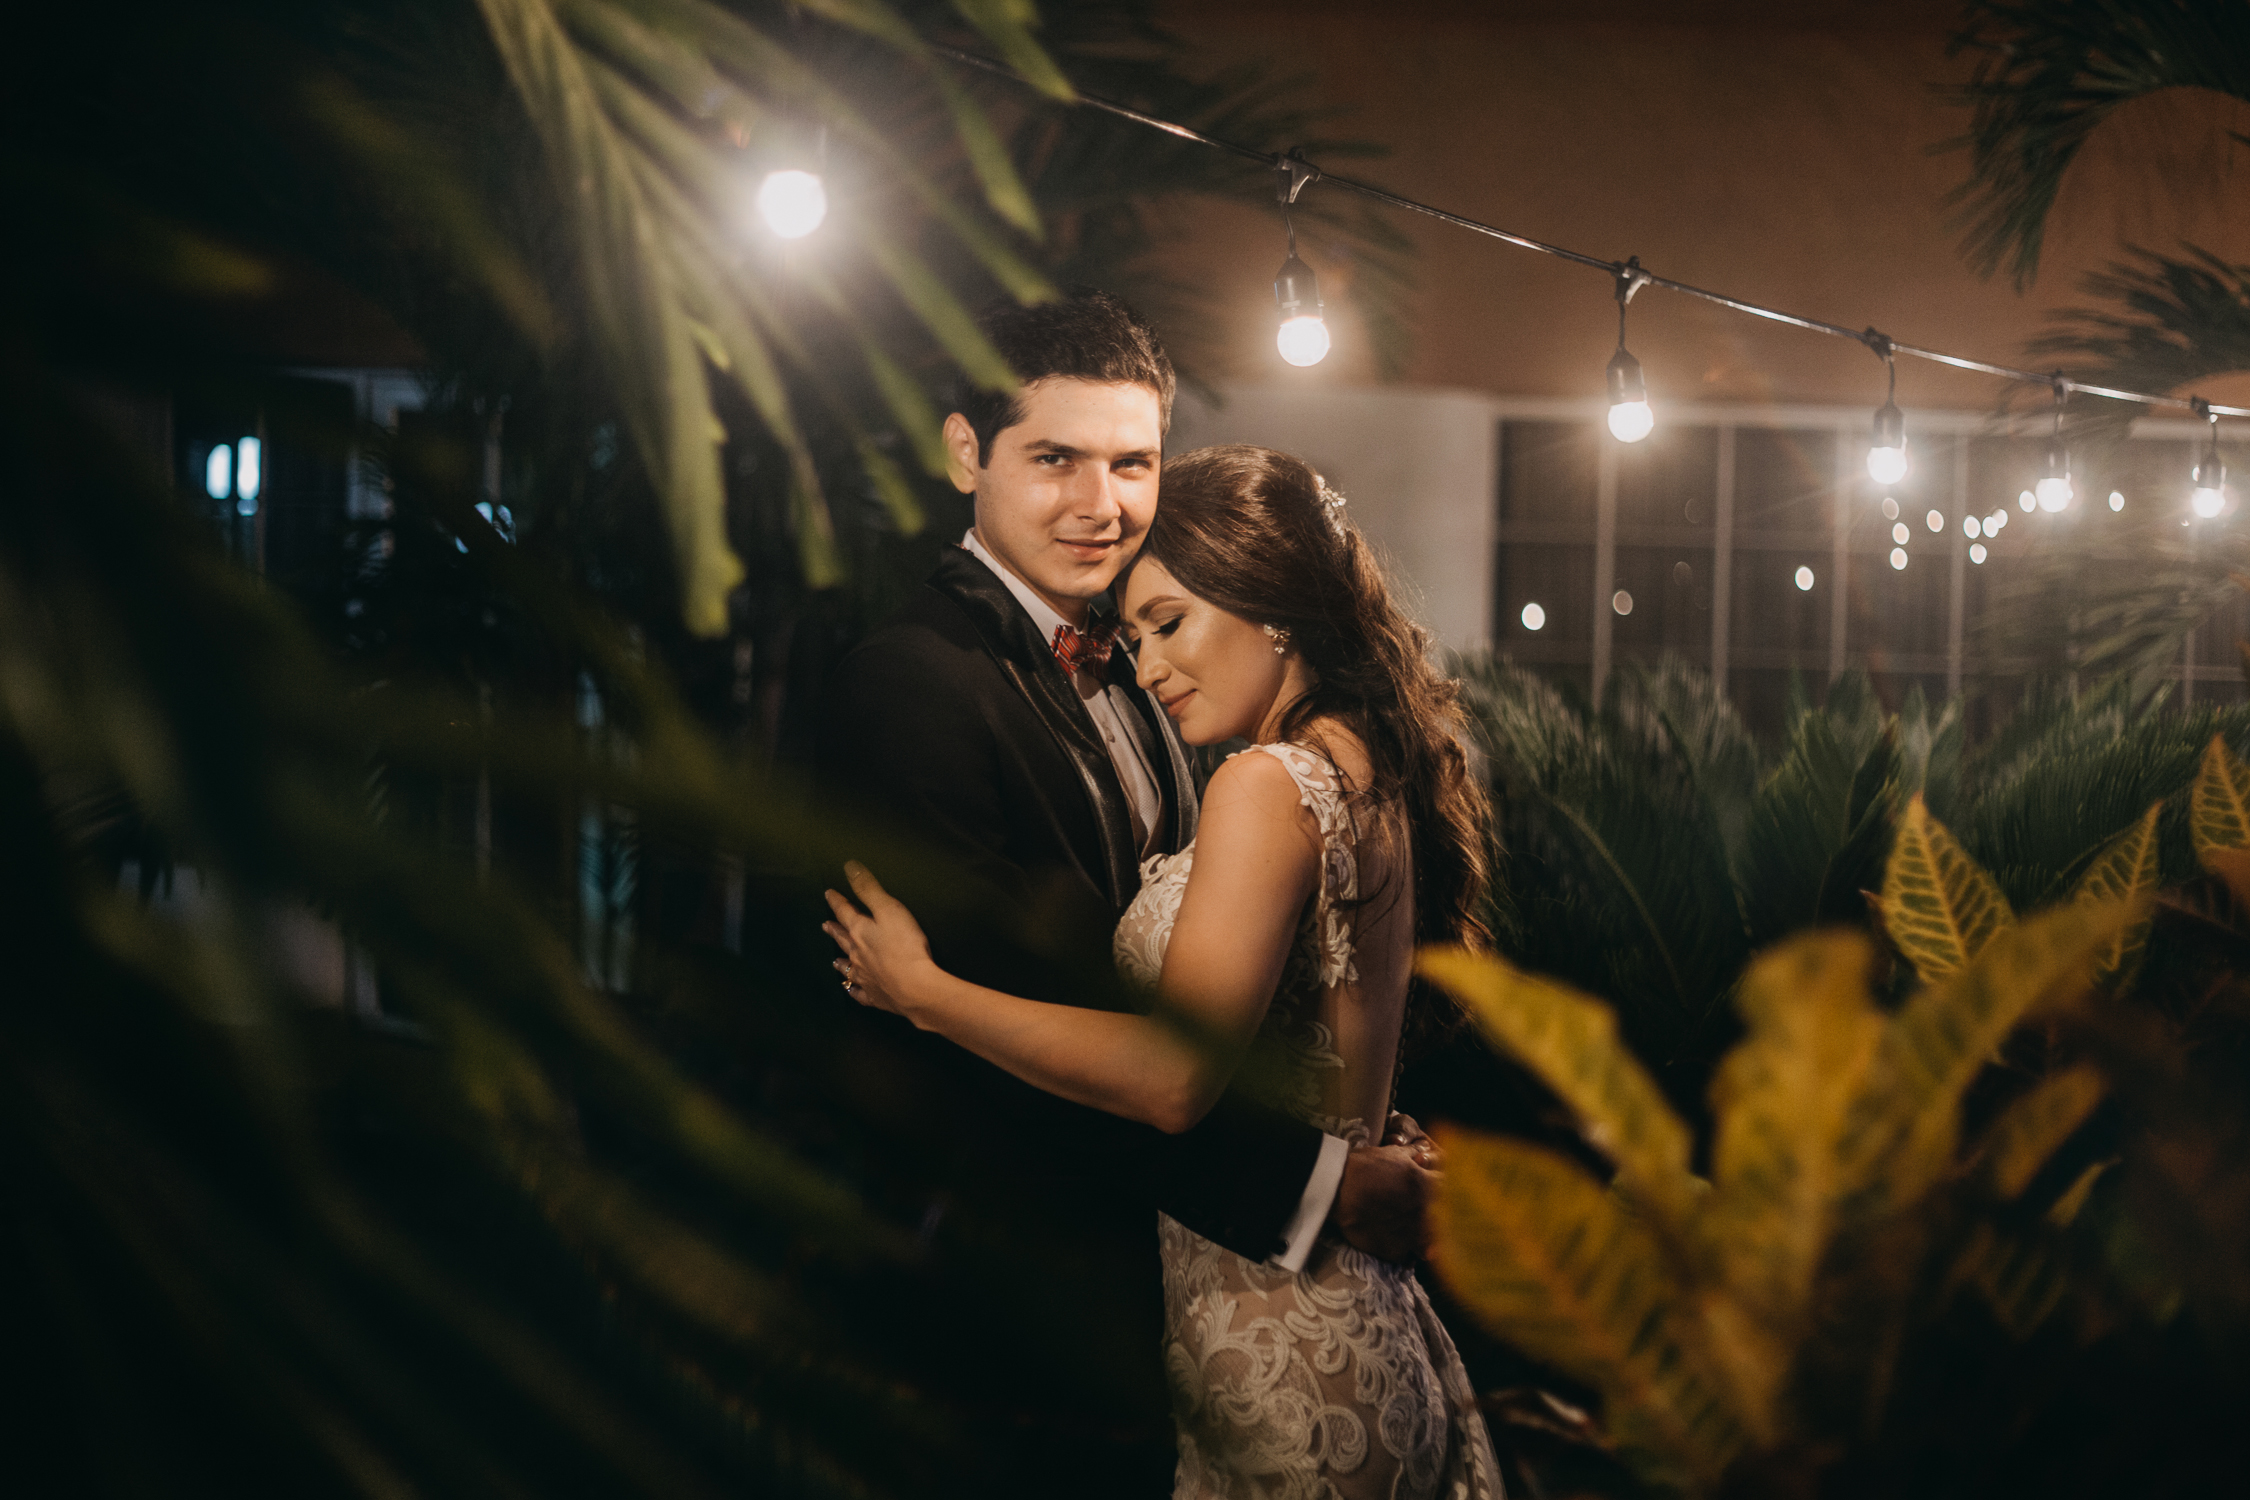 Michelle-Agurto-Fotografia-Bodas-Ecuador-Destination-Wedding-Photographer-Alysson-Tito-146.JPG